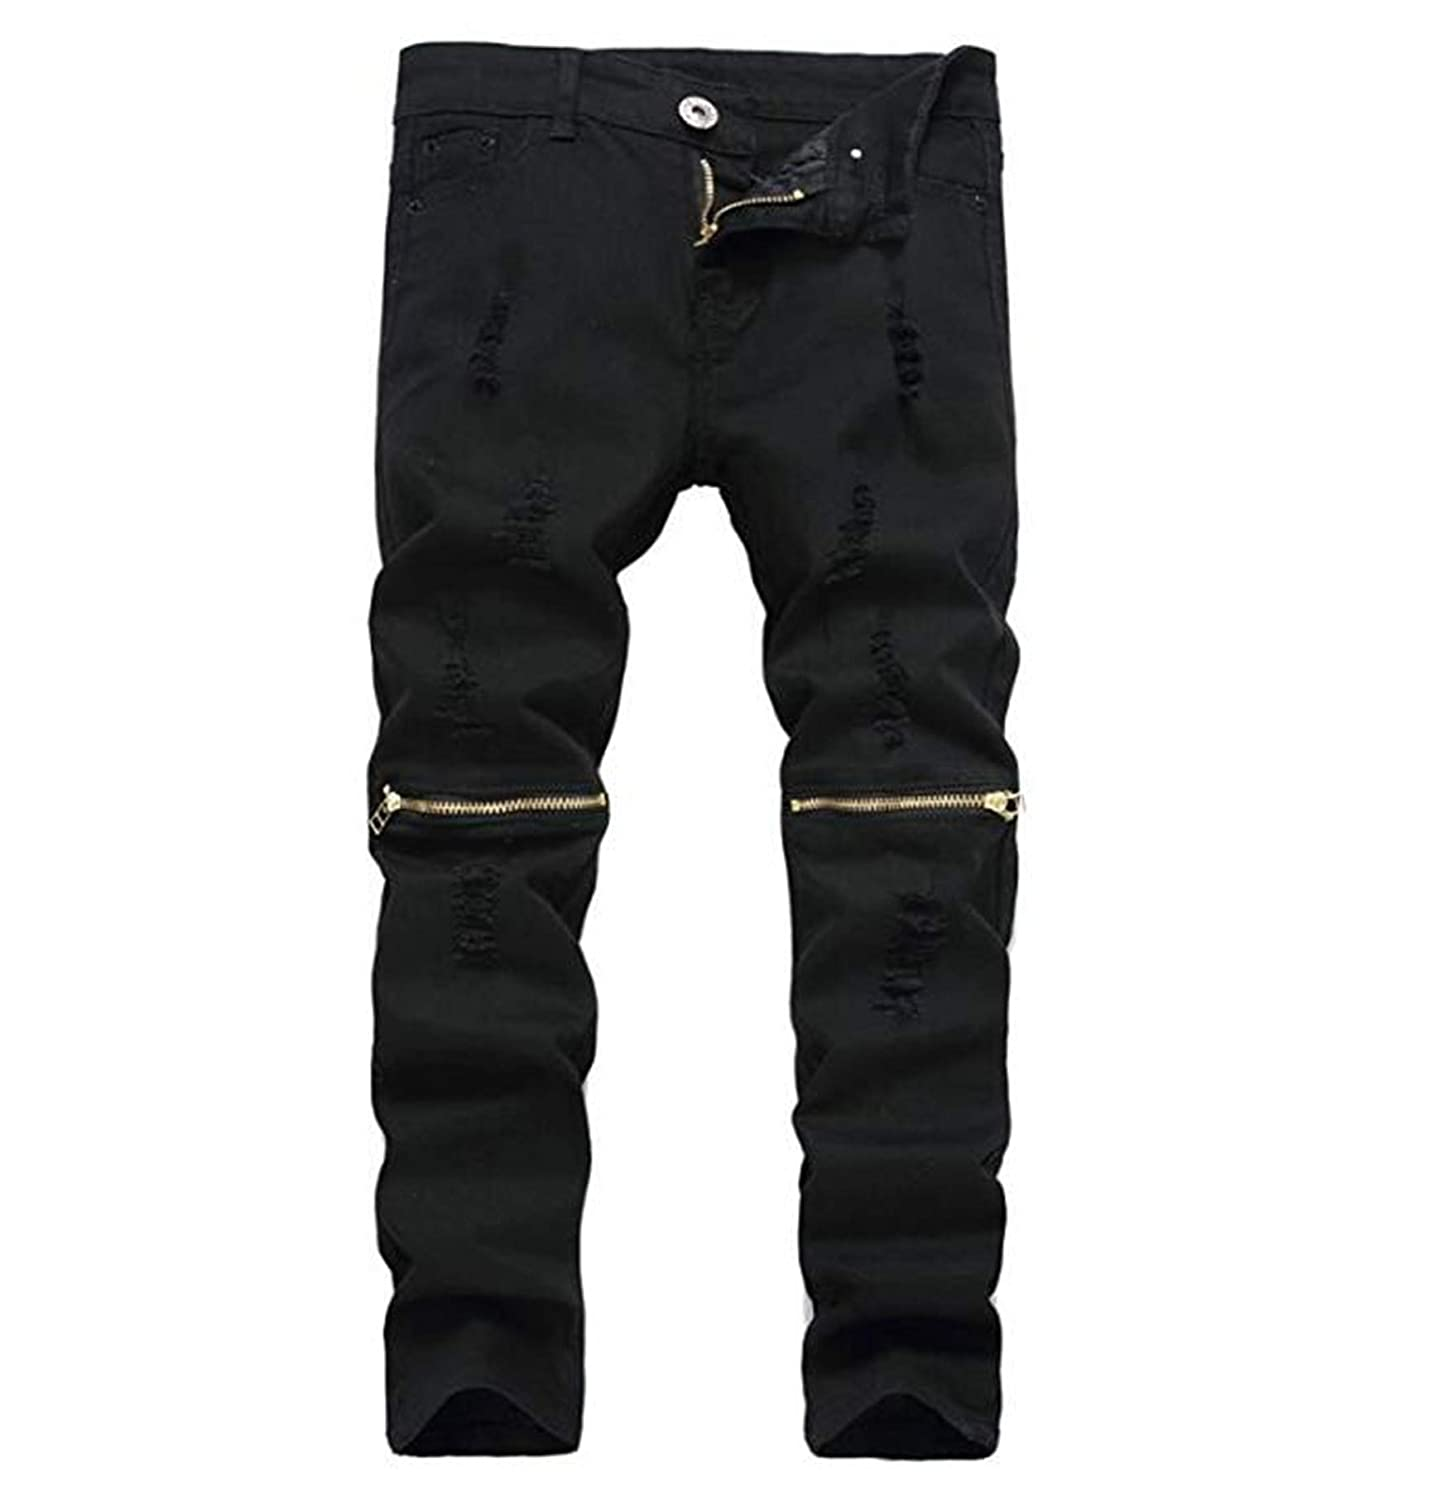 IA ROD CA Boys Slim Skinny Ripped Distressed Zipper Fit Jeans Pants with Holes J369852159boy